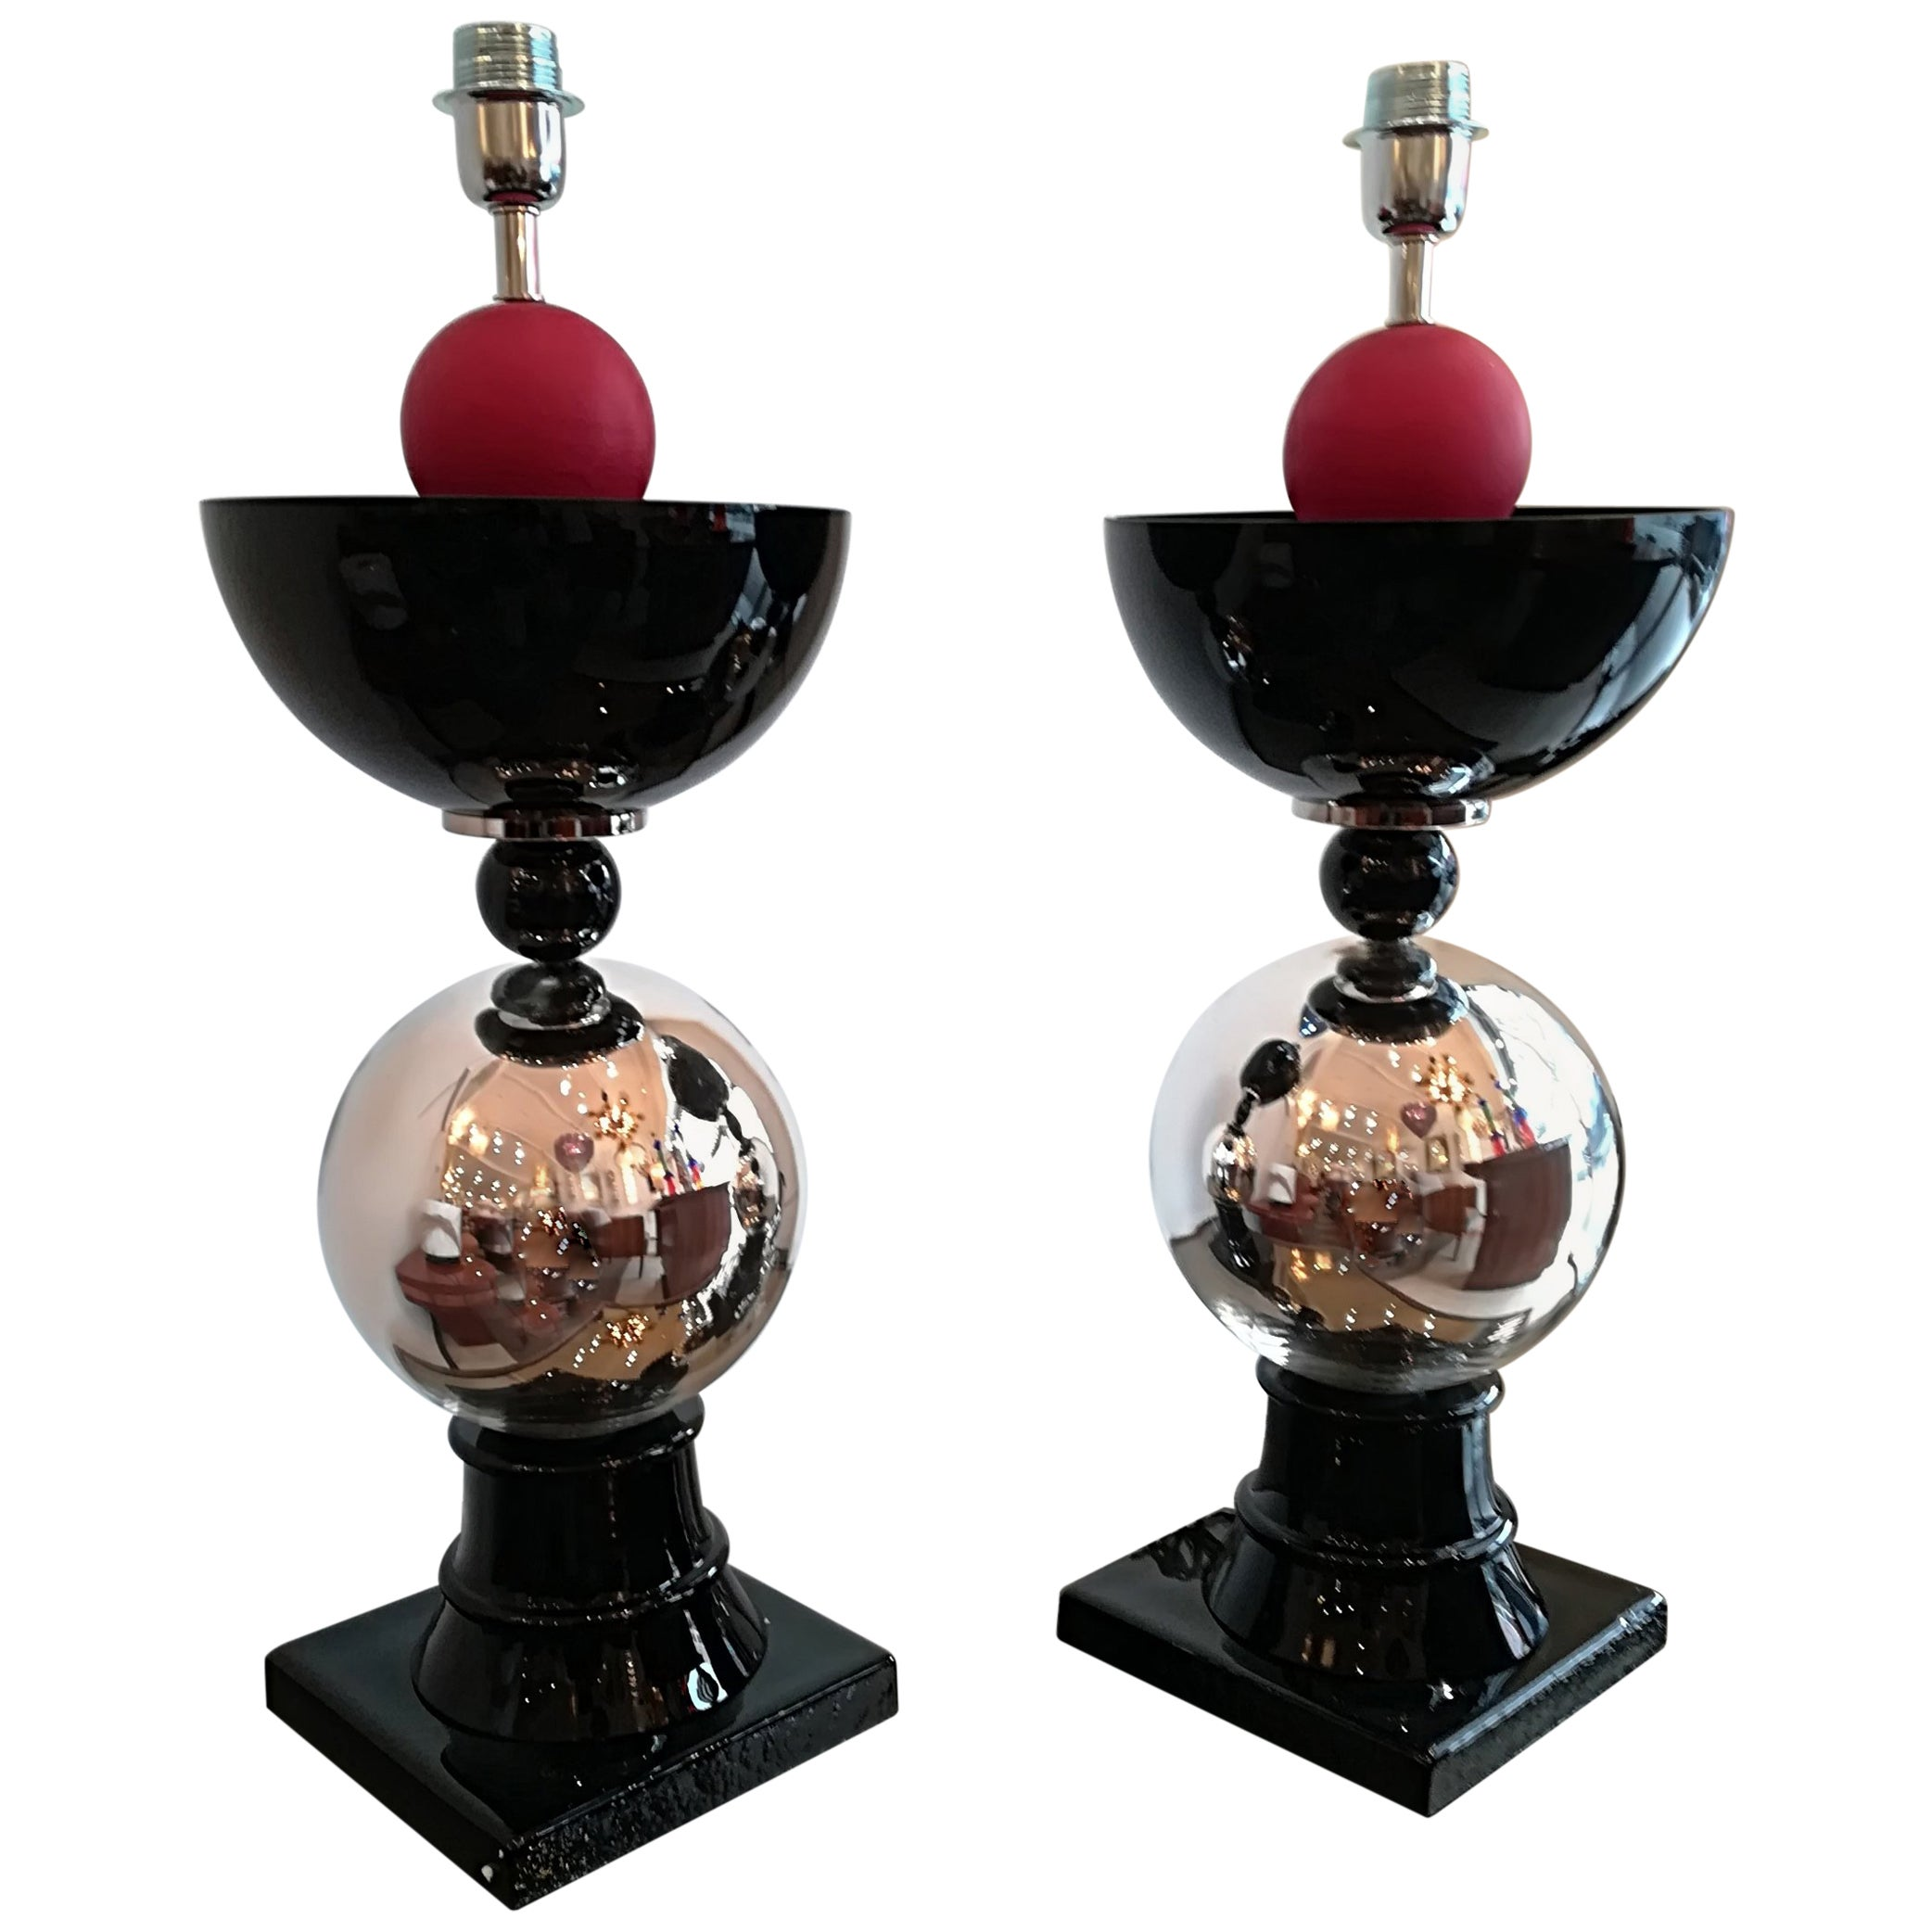 Pair of Italian Table Lamps in Handblown Murano Glass